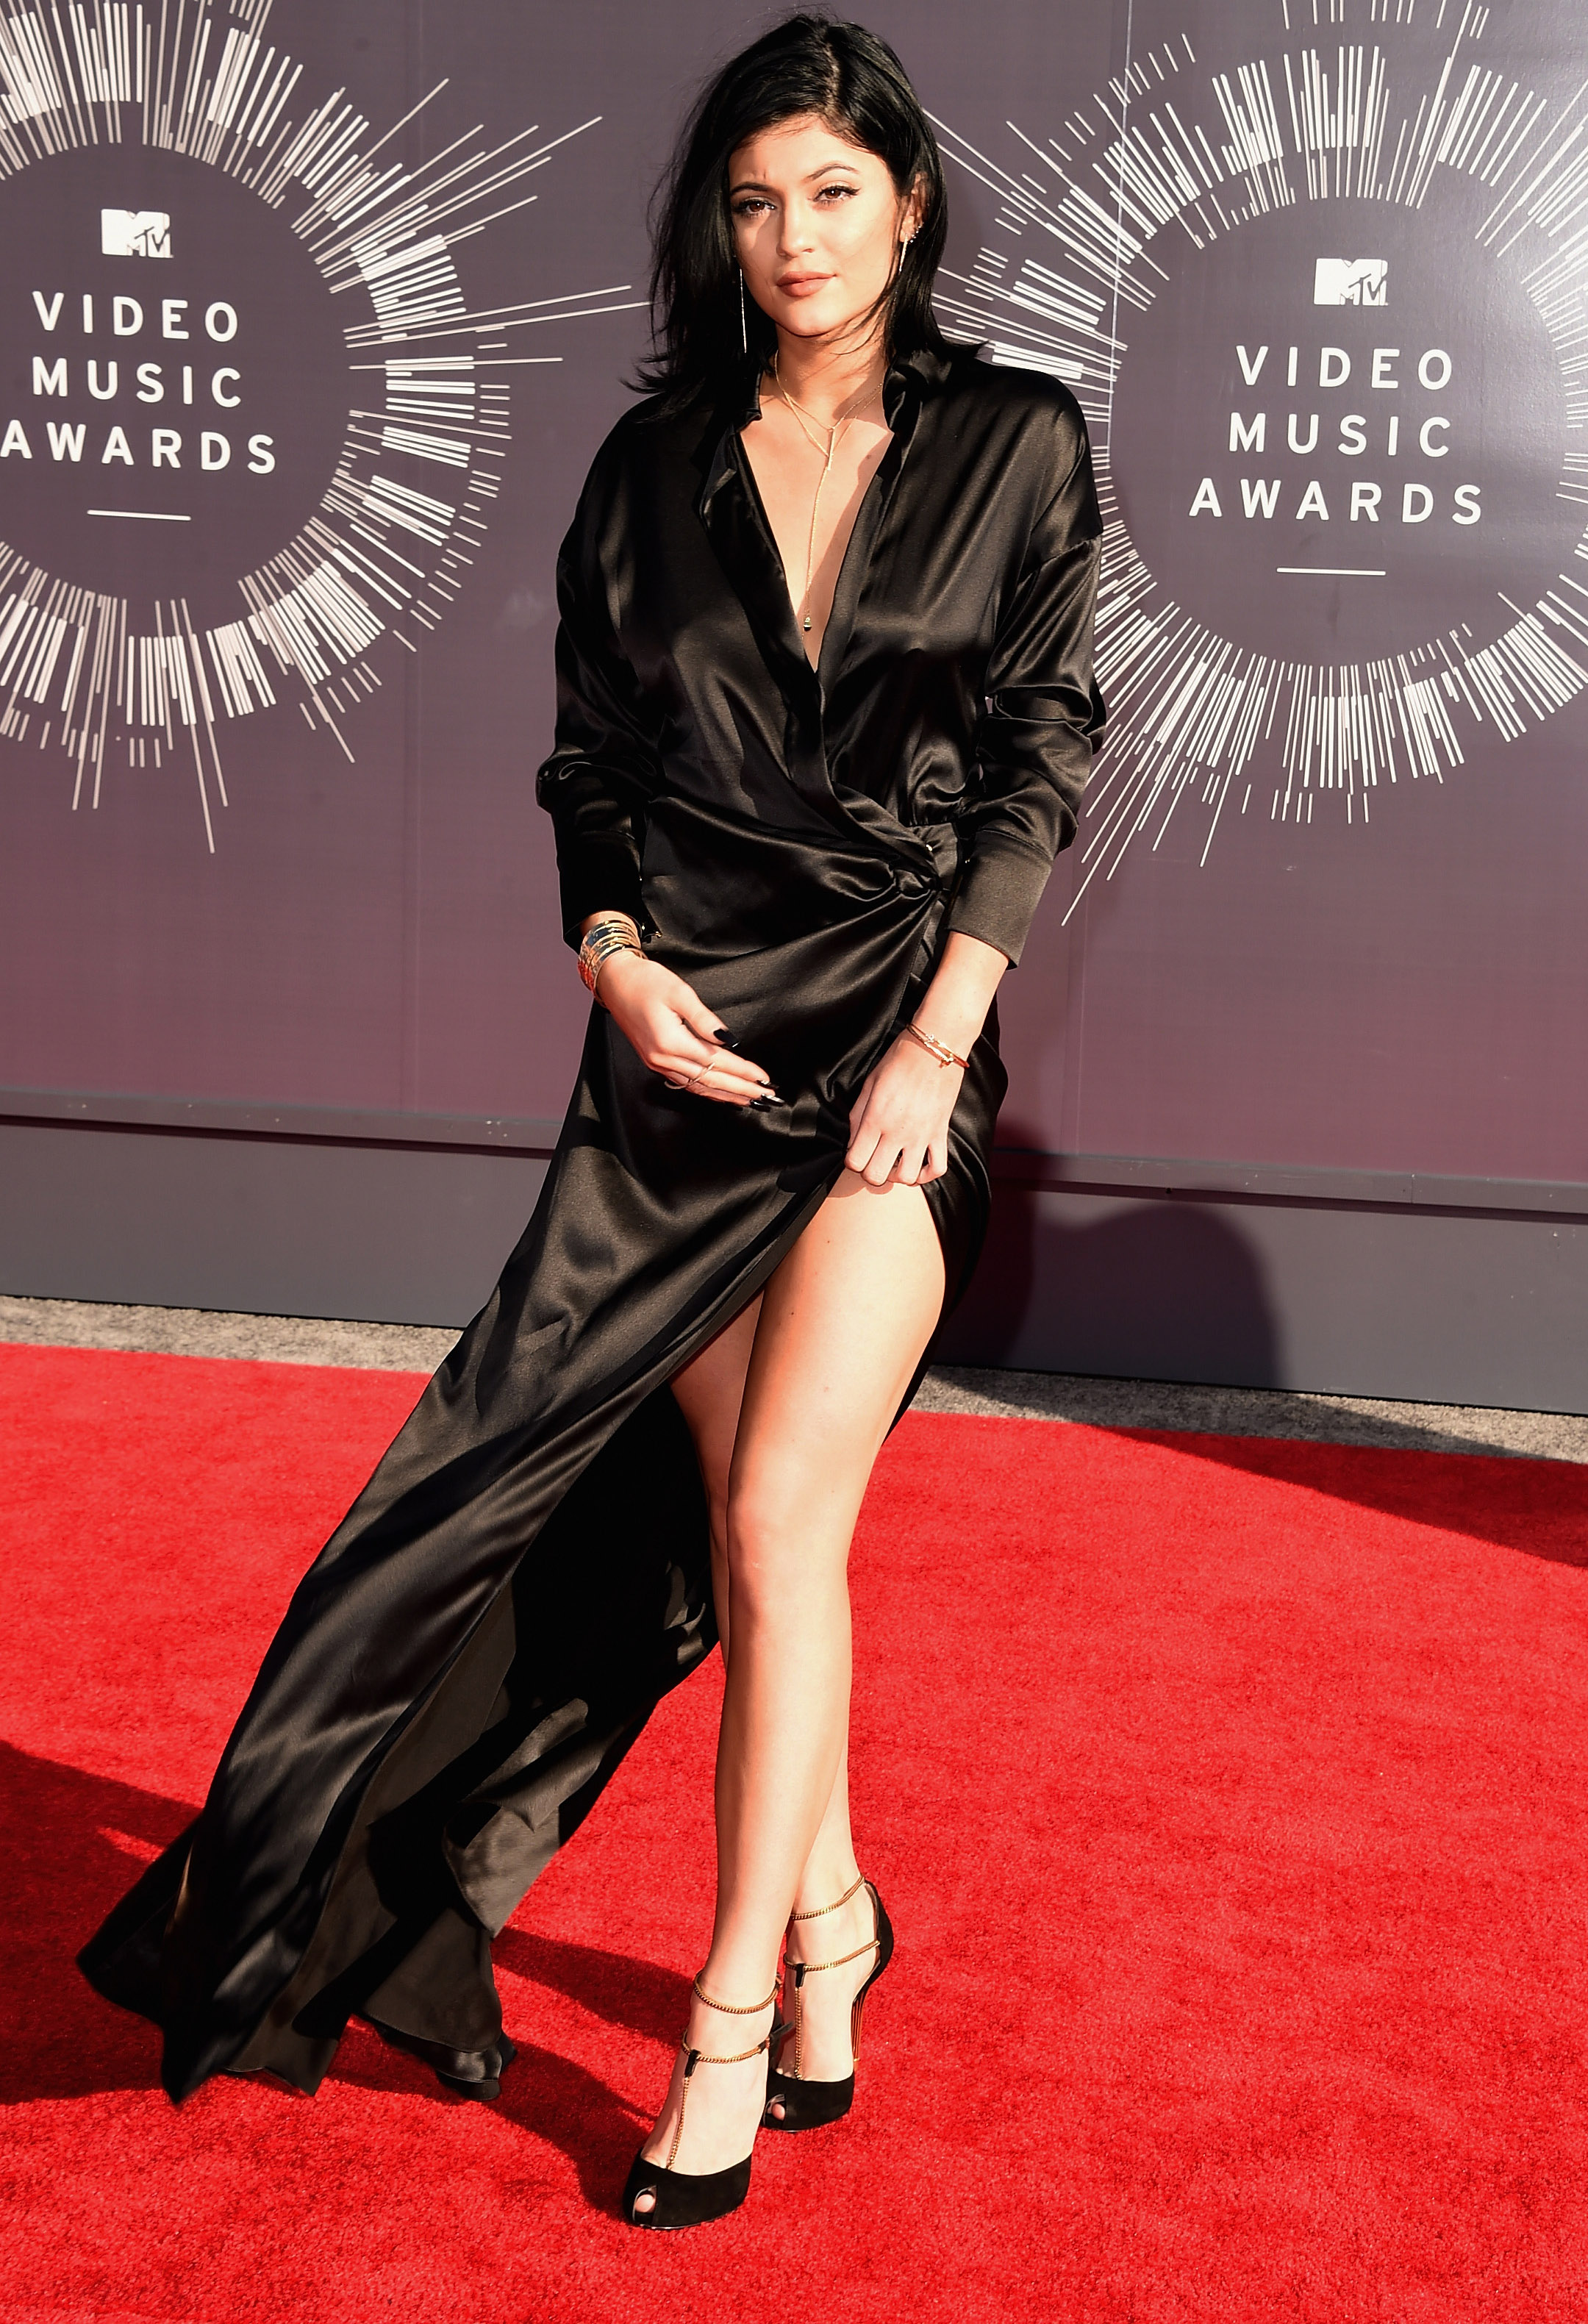 TV personality Kylie Jenner attends the 2014 MTV Video Music Awards at The Forum on August 24, 2014 in Inglewood, California. (Photo by Steve Granitz/WireImage)